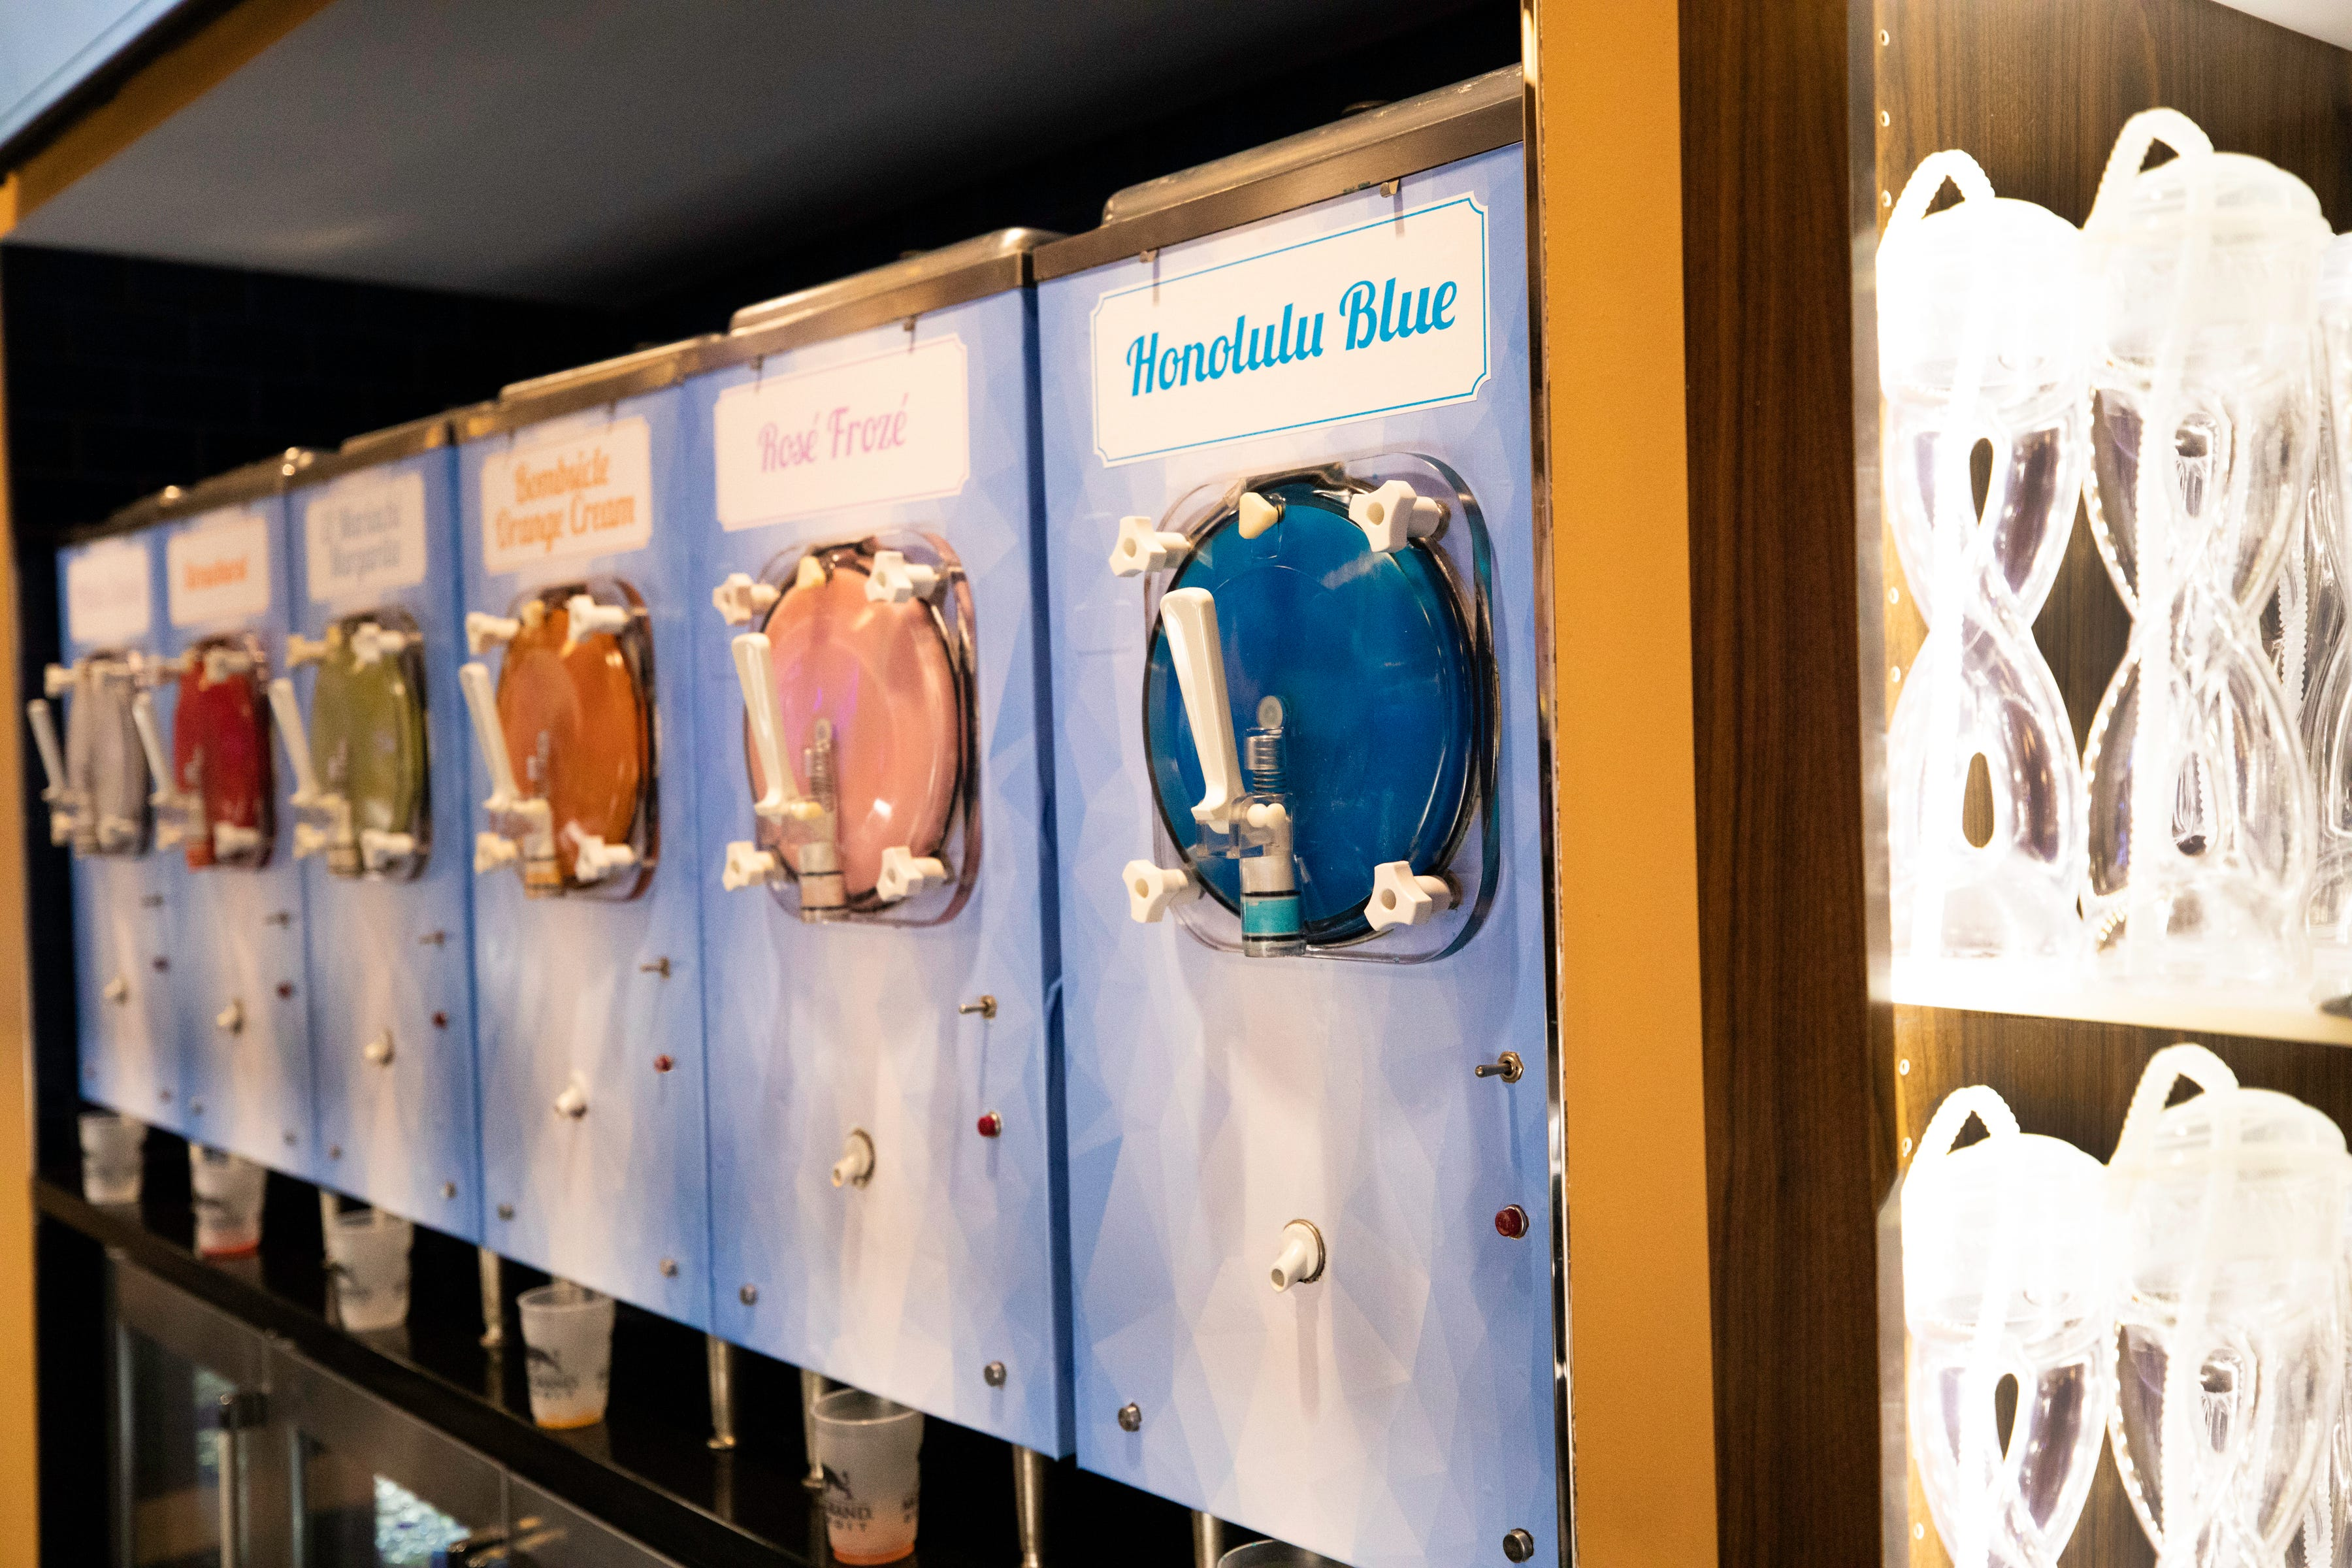 32 Degrees opened this week at MGM Grand Detroit with six varieties of frozen drinks.